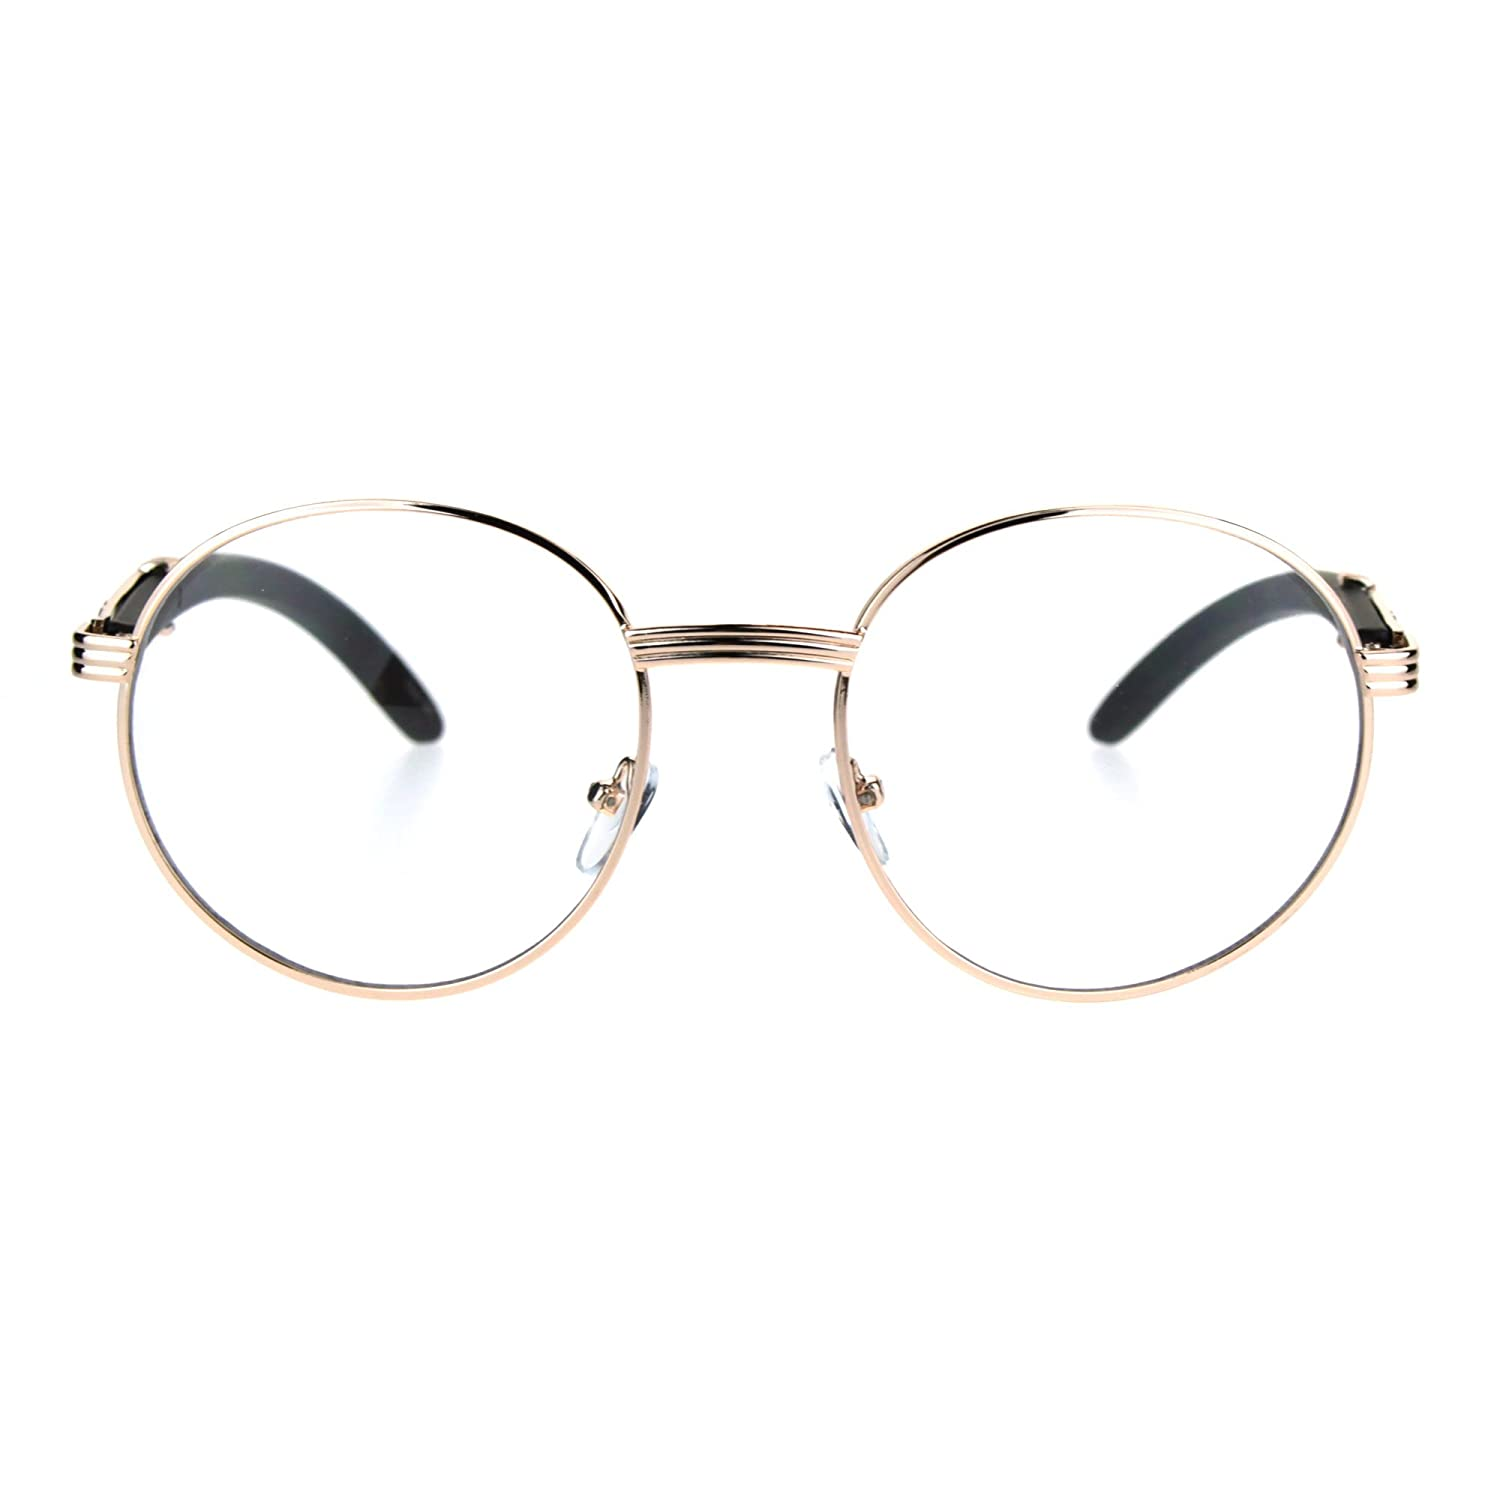 162f728f2974 Amazon.com  SA106 Art Nouveau Vintage Style Oval Metal Frame Eye Glasses  Exposed Lens Yellow Gold  Clothing